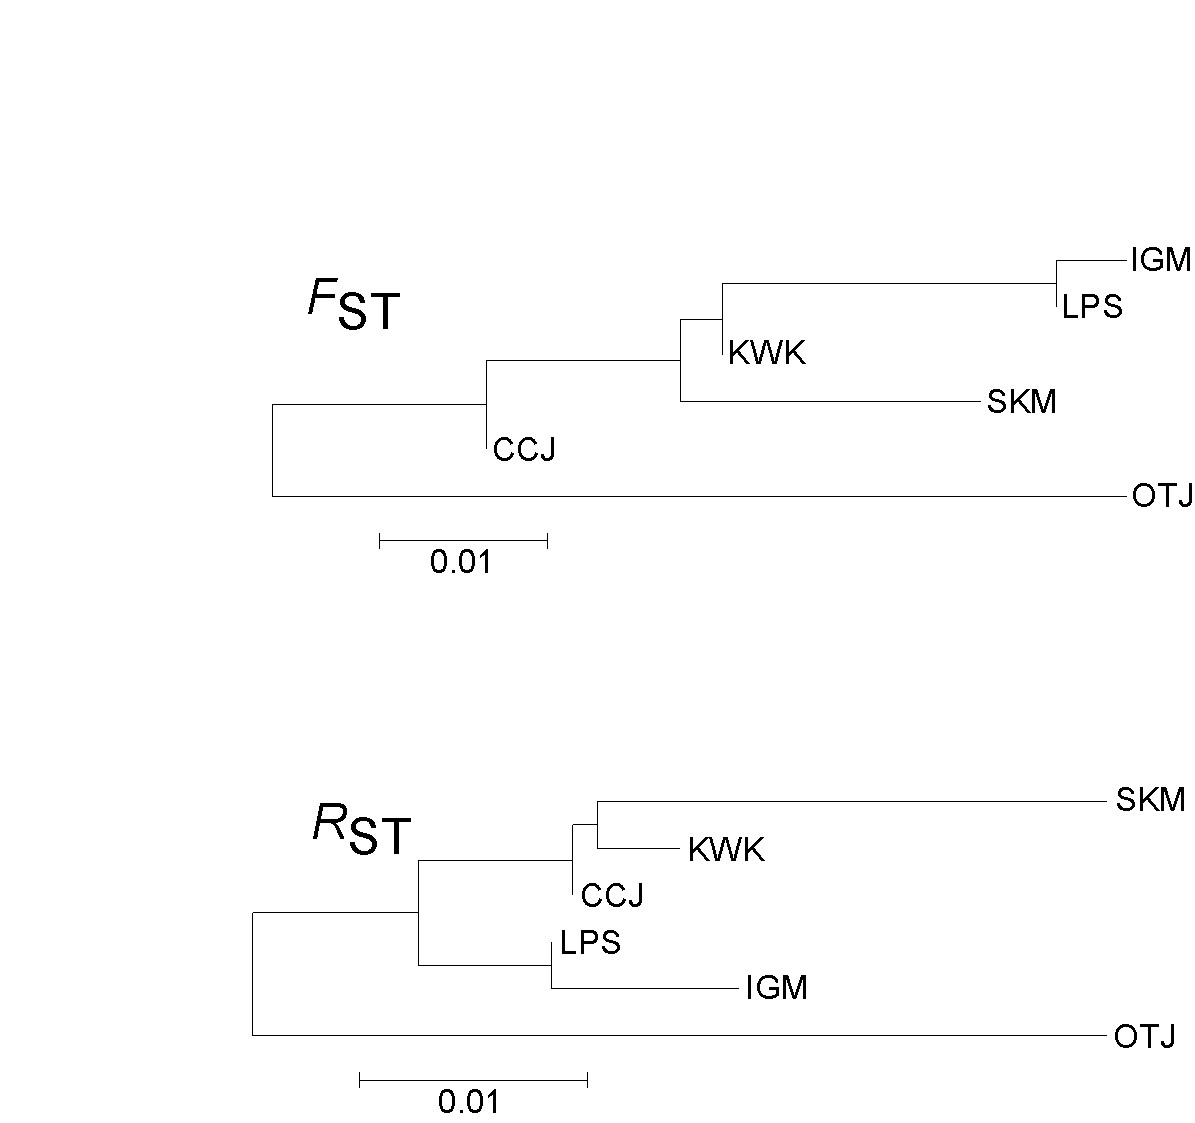 http://static-content.springer.com/image/art%3A10.1186%2F1472-6785-6-14/MediaObjects/12898_2006_Article_67_Fig3_HTML.jpg